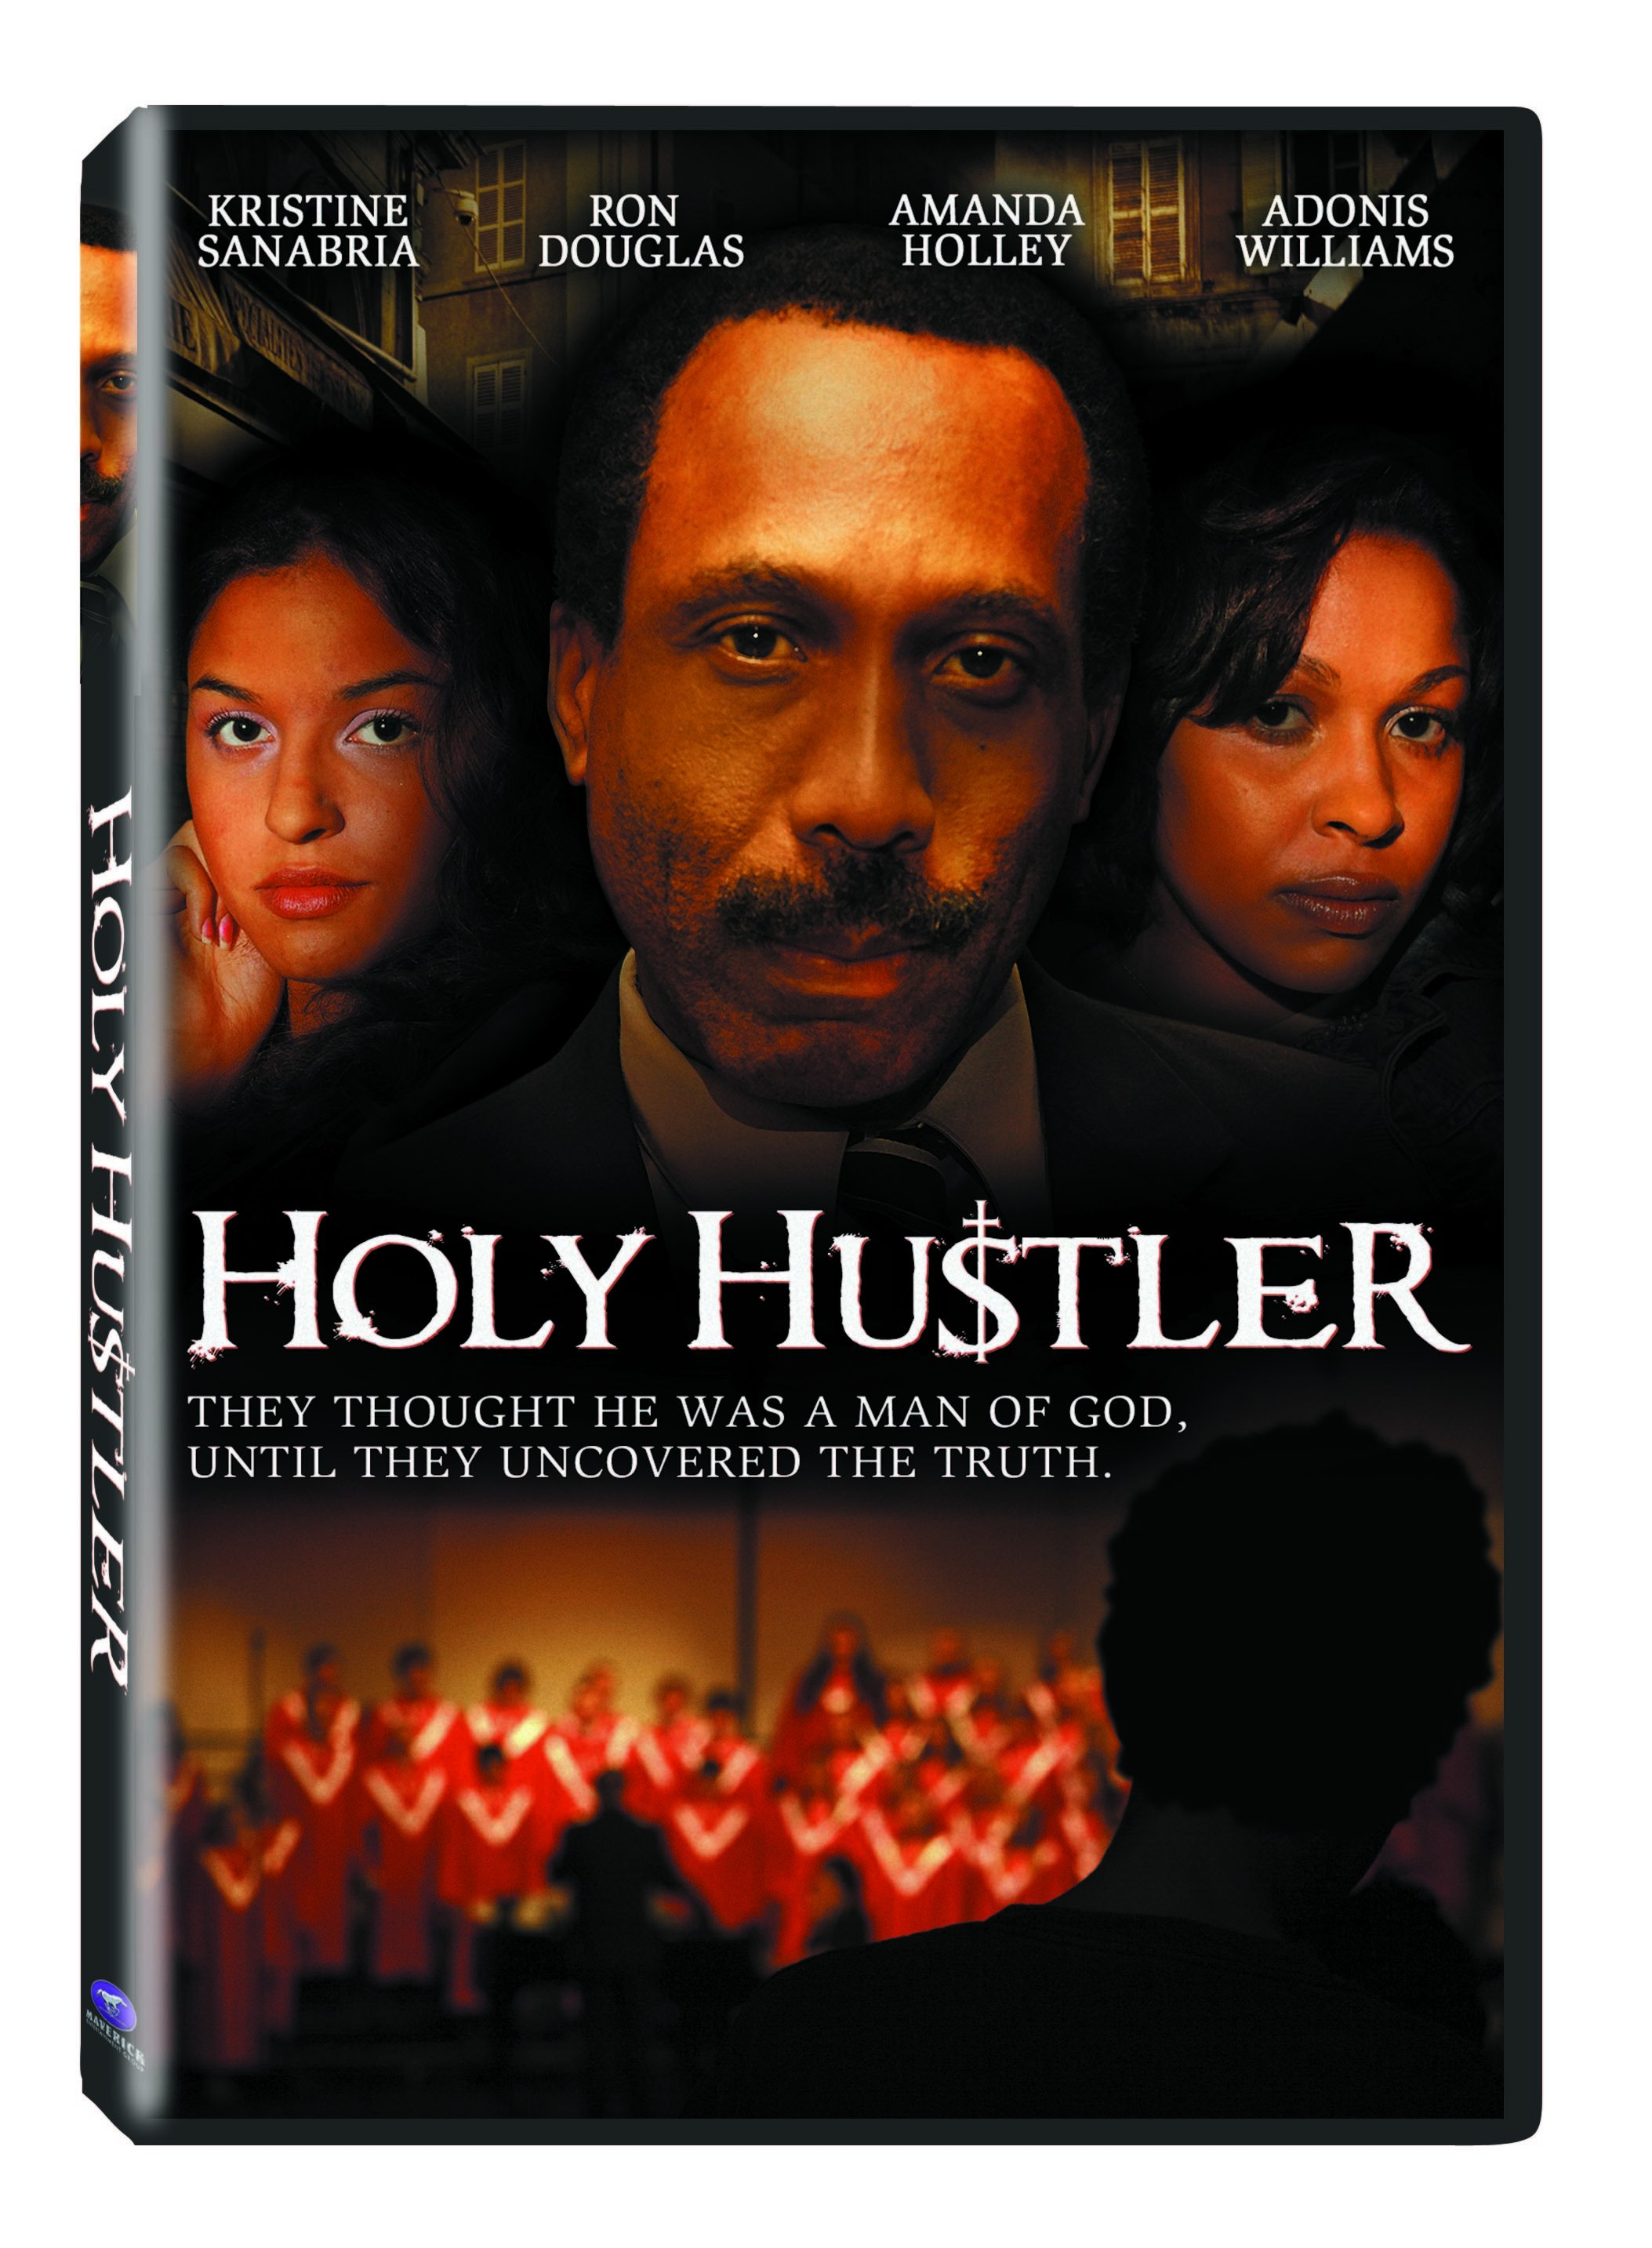 The hustler the movie are not